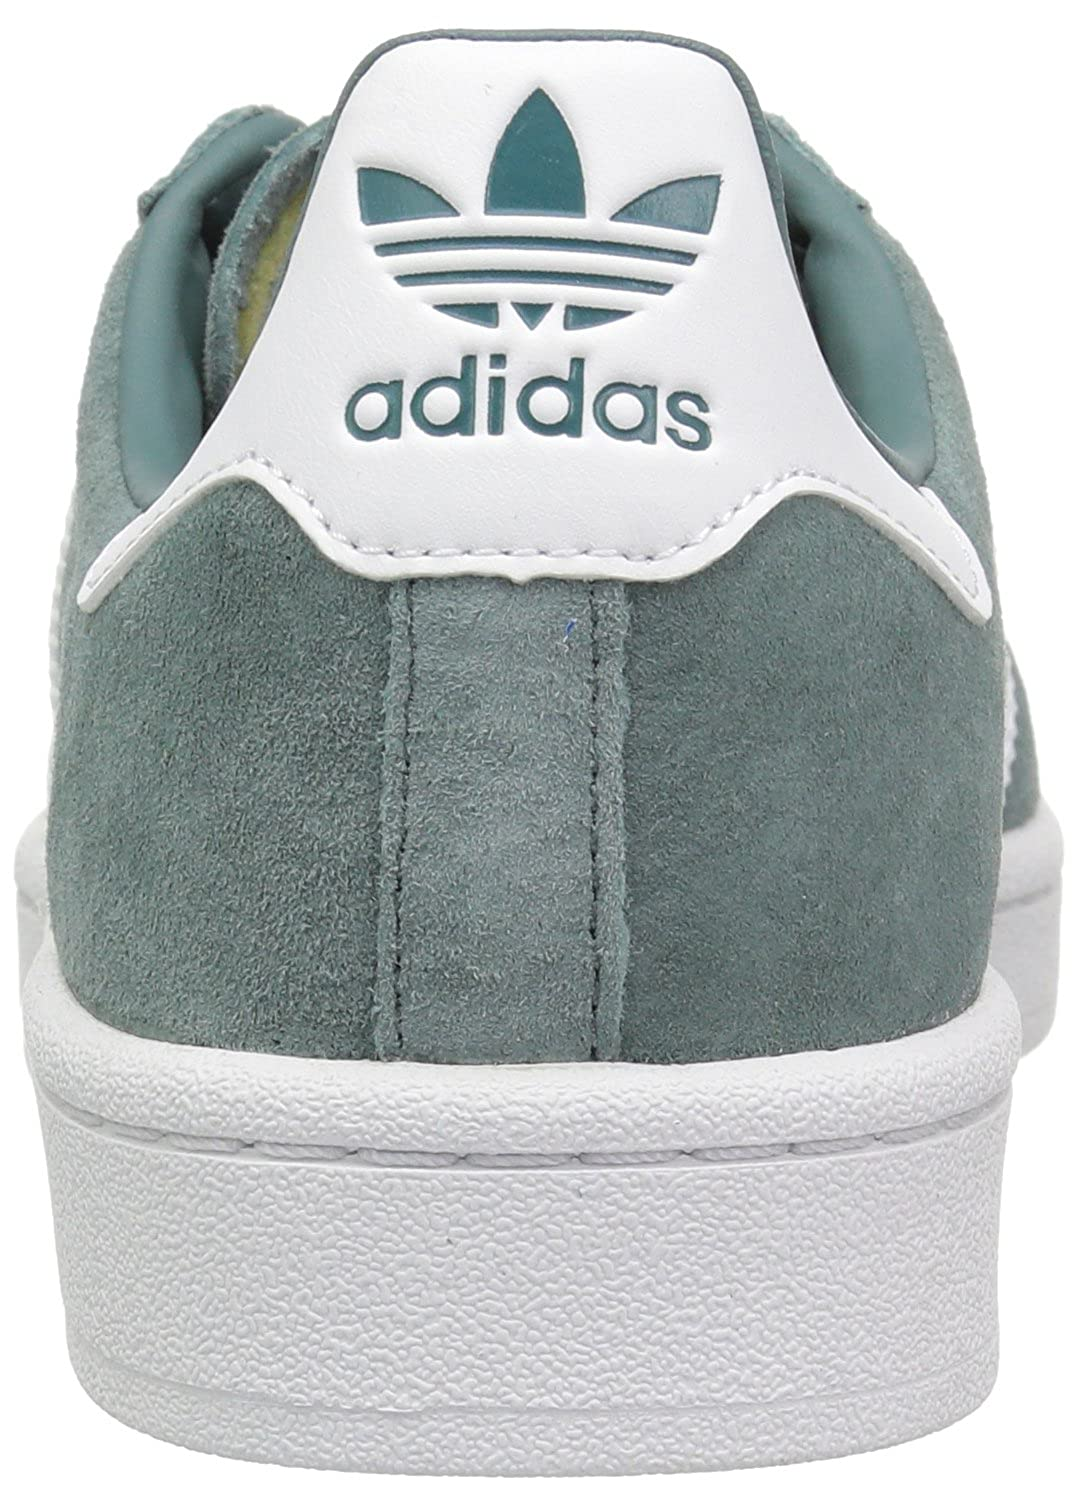 Adidas-Campus-Men-039-s-Casual-Fashion-Sneakers-Retro-Athletic-Shoes thumbnail 44